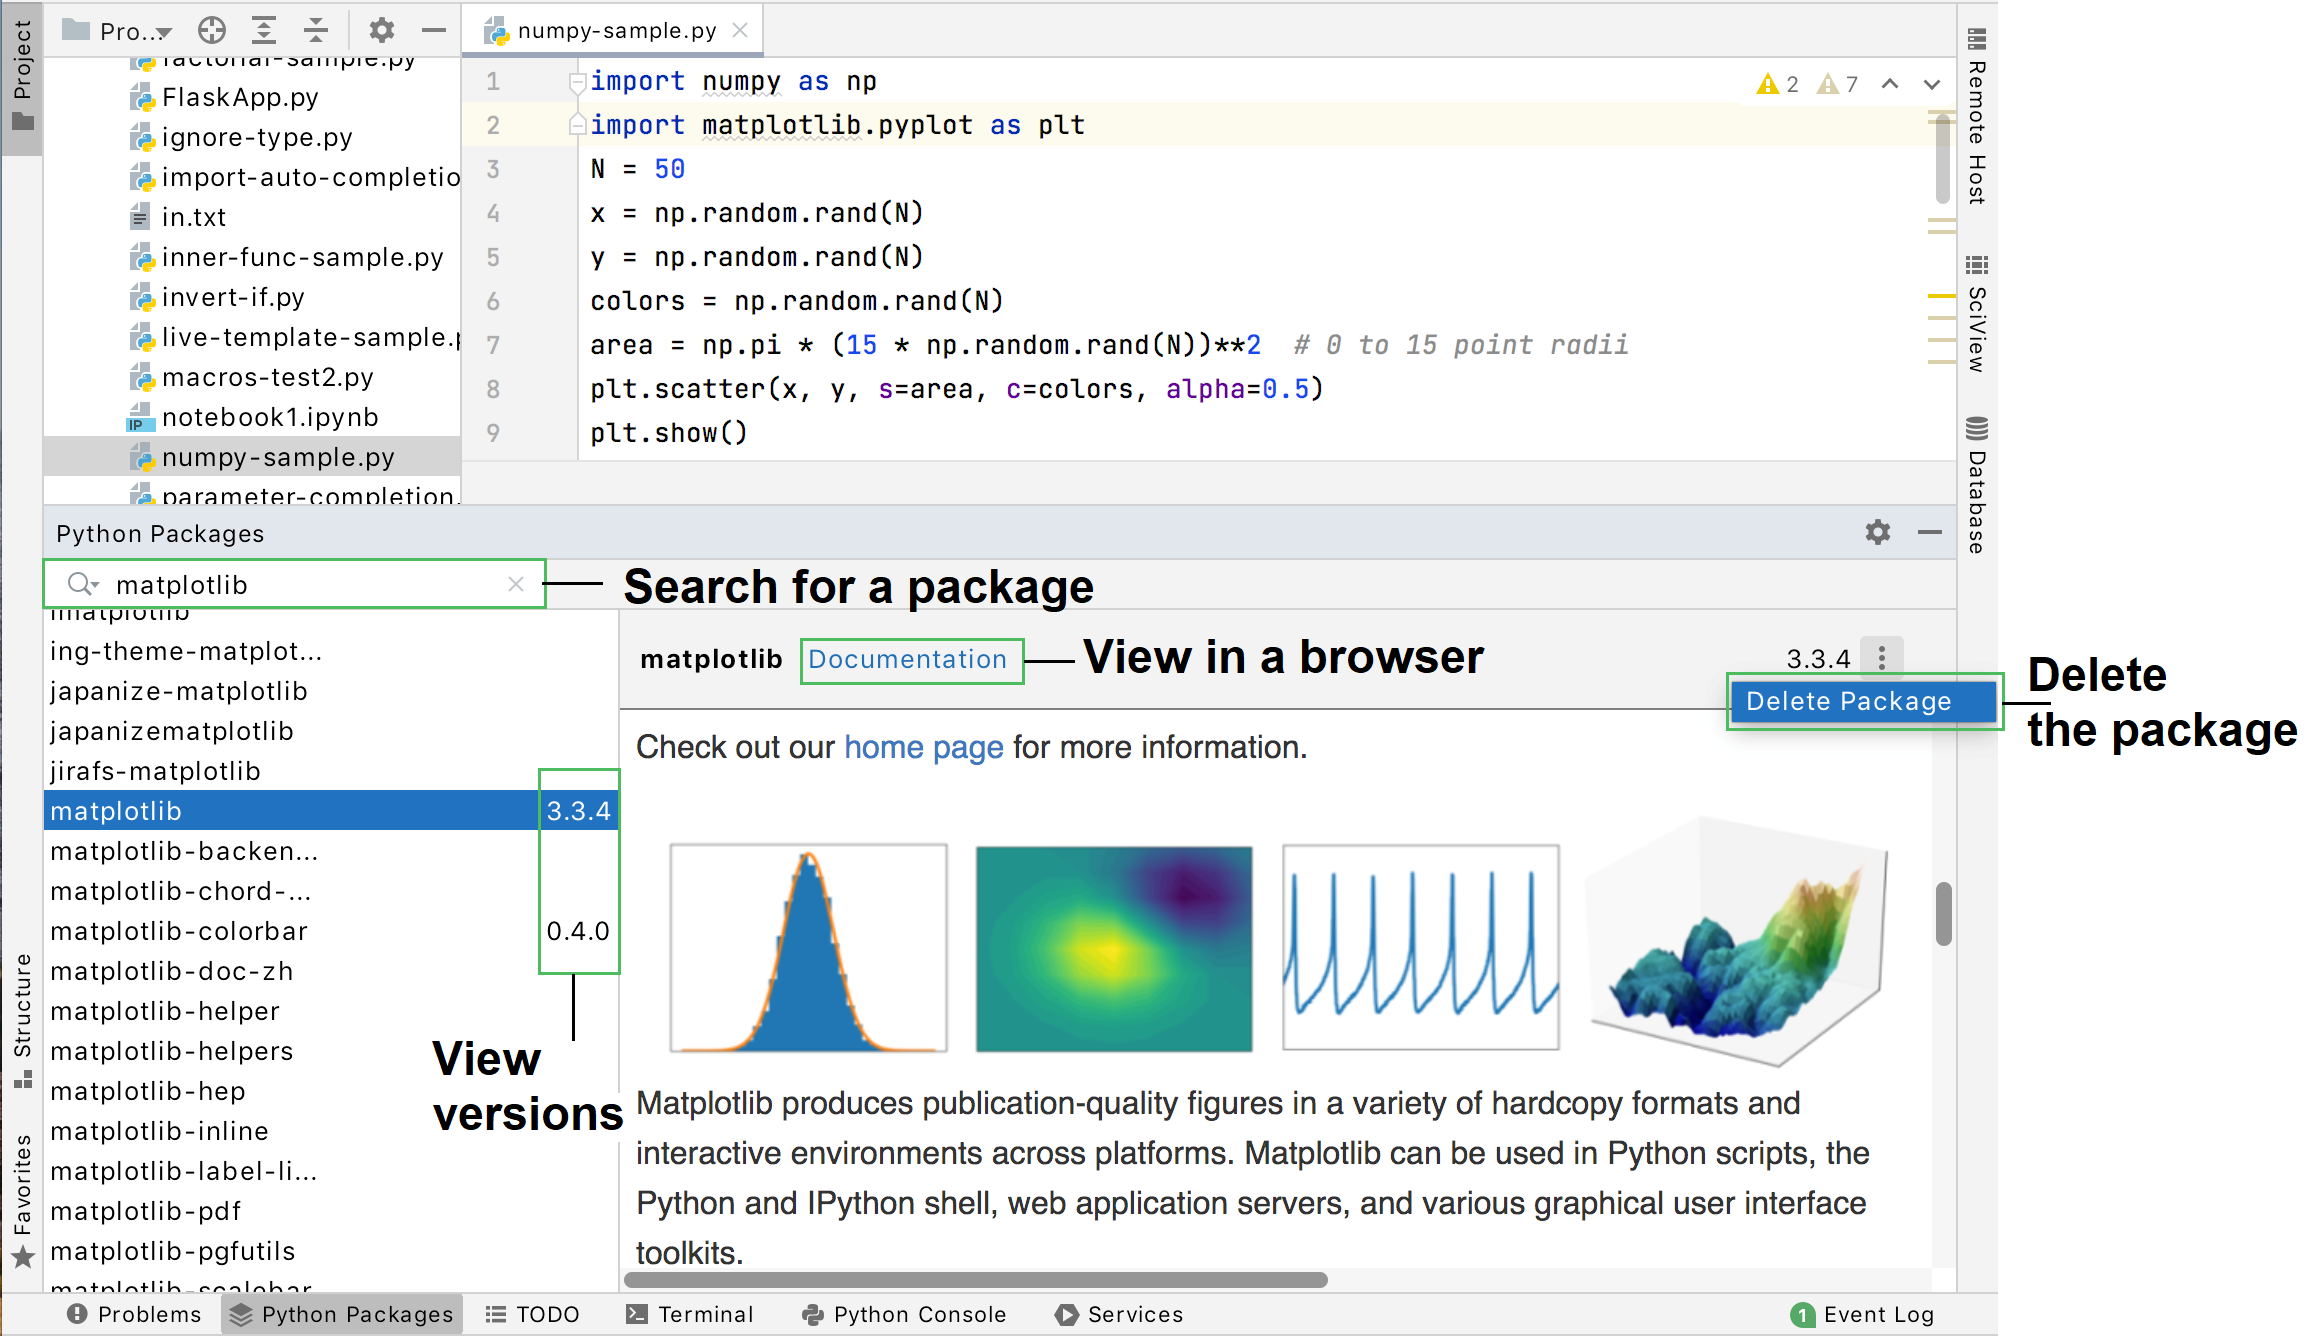 Python Packages tool window